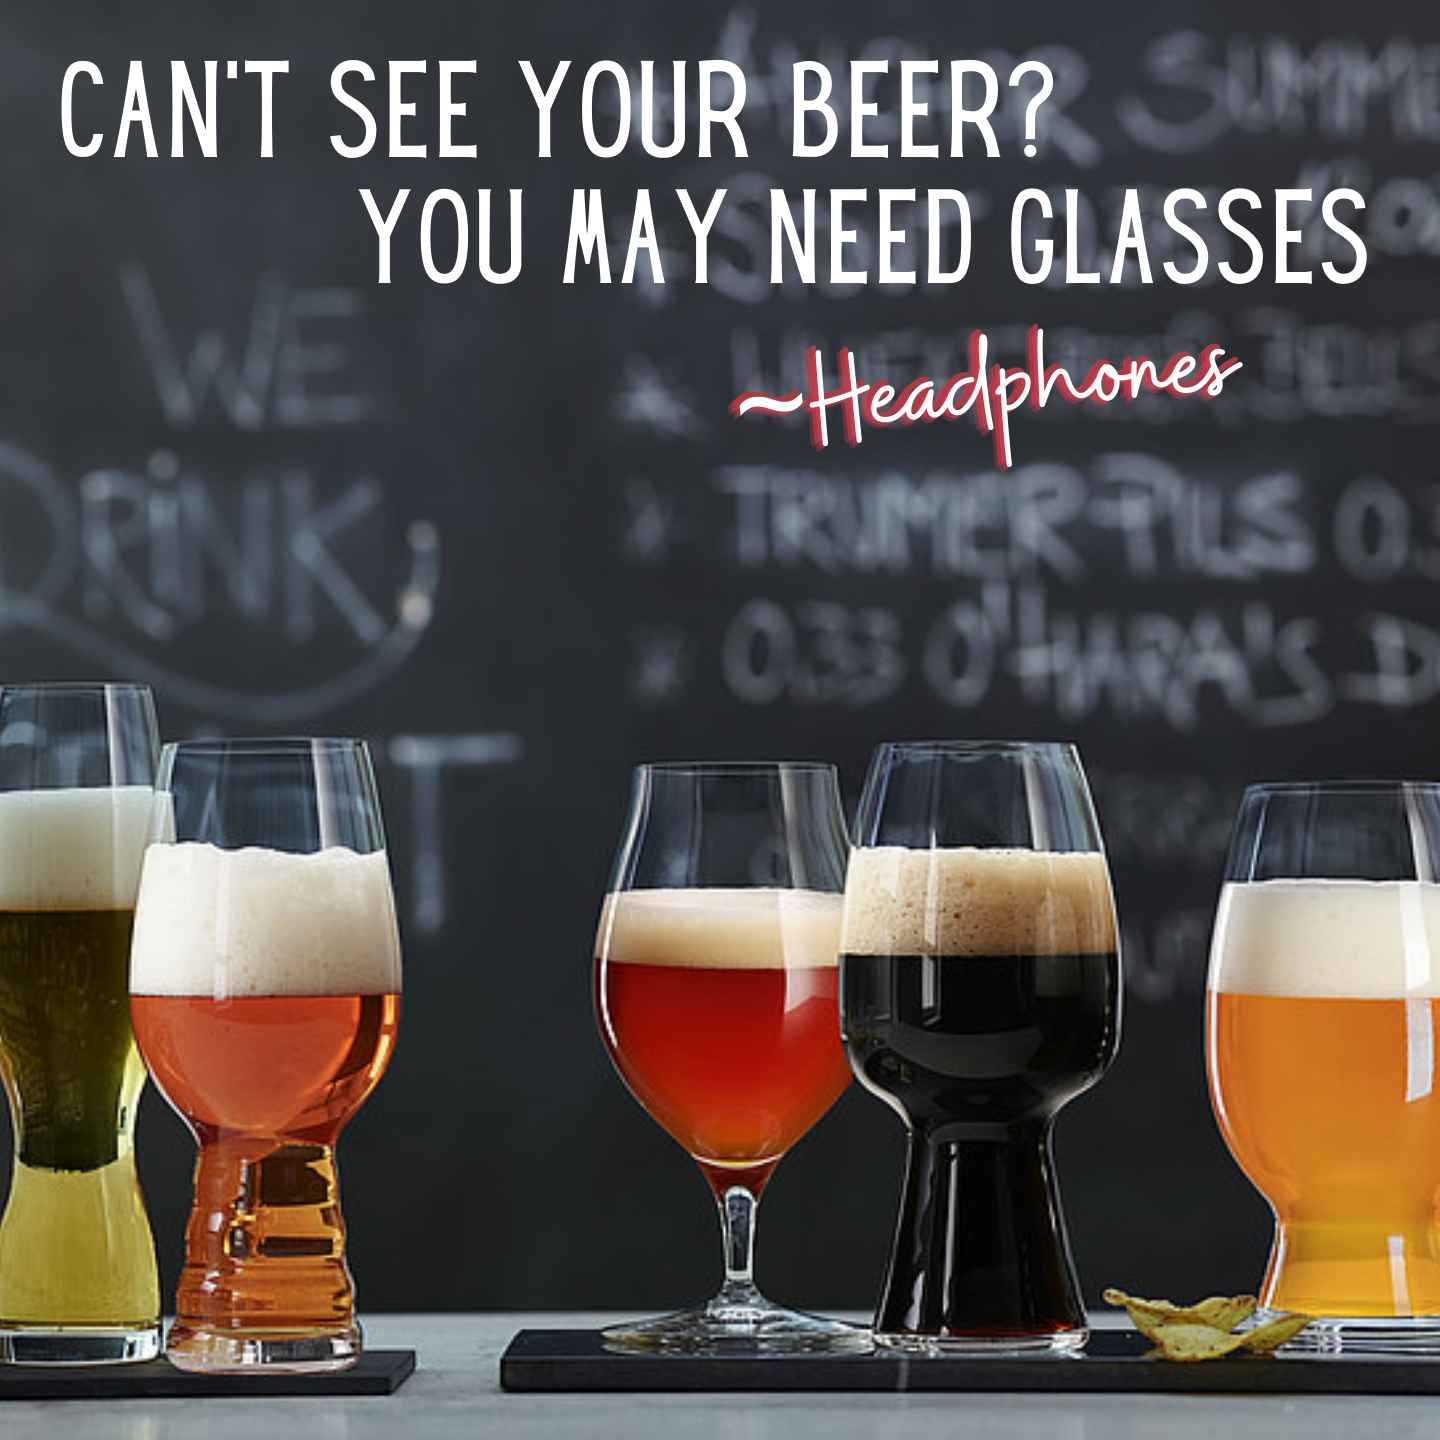 Can't see your beer? You may need glasses!